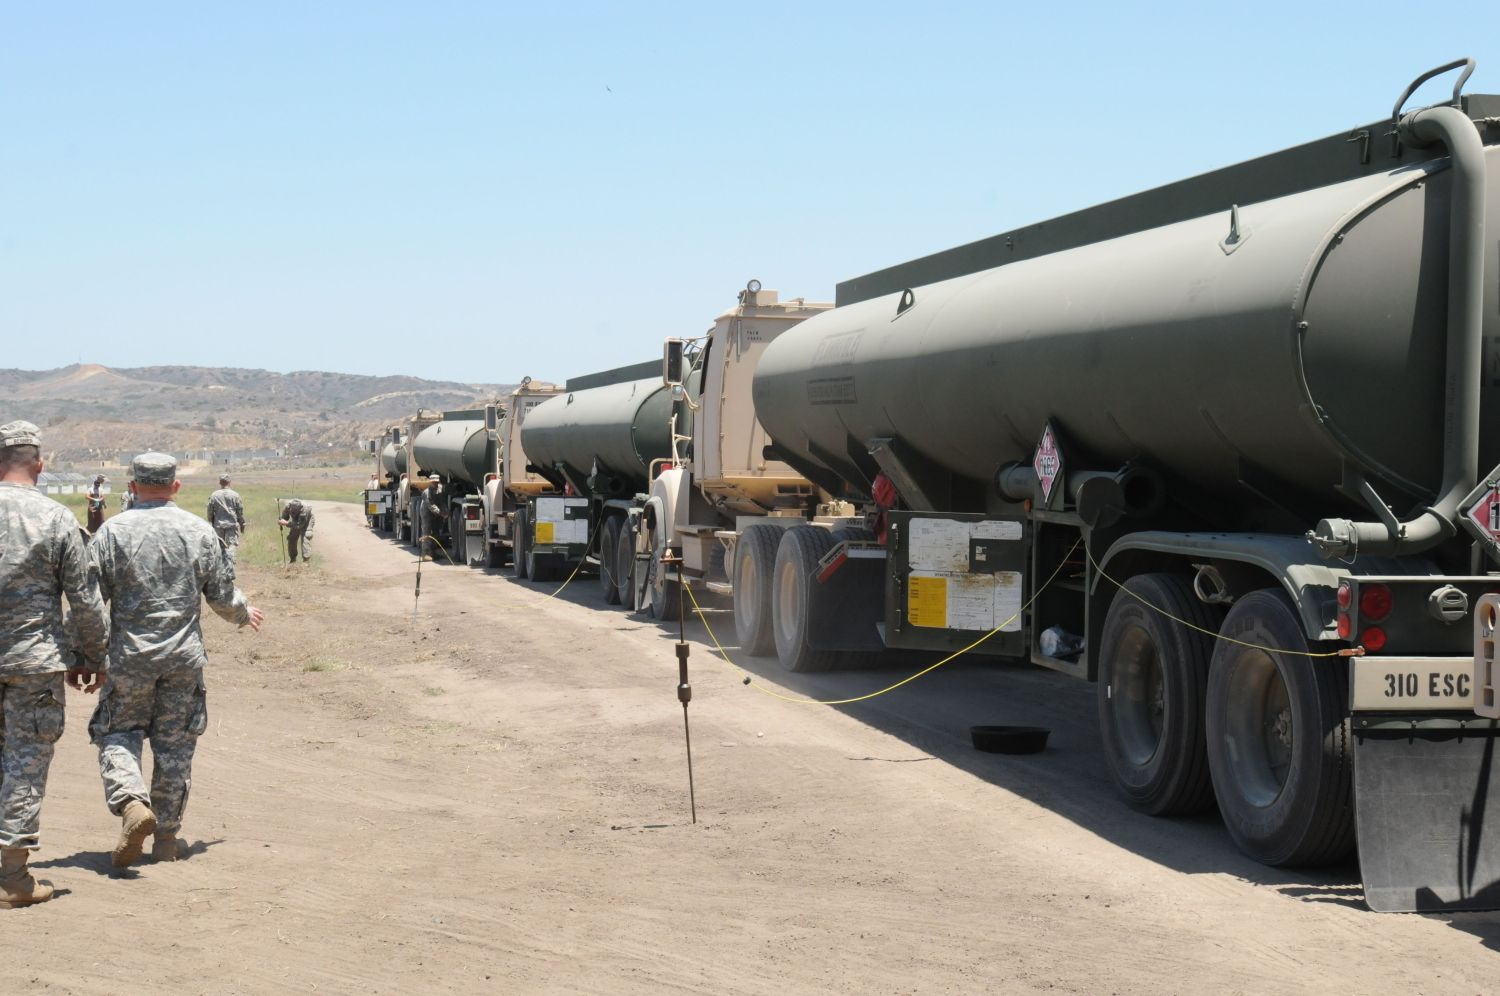 a convoy of fuel trucks stops to have their fuel cargo tested at the quartermaster liquid logistics excercise, camp pendleton, ca qllex is a joint forces exercise where 64 units at eight locations across the continental united states will deliver more than 325 million gallons of petroleum and produce 479,000 gallons of water, designed to challenge and develop the battalion's staff military decision making skills us army photo by spc thomas x croughreleased